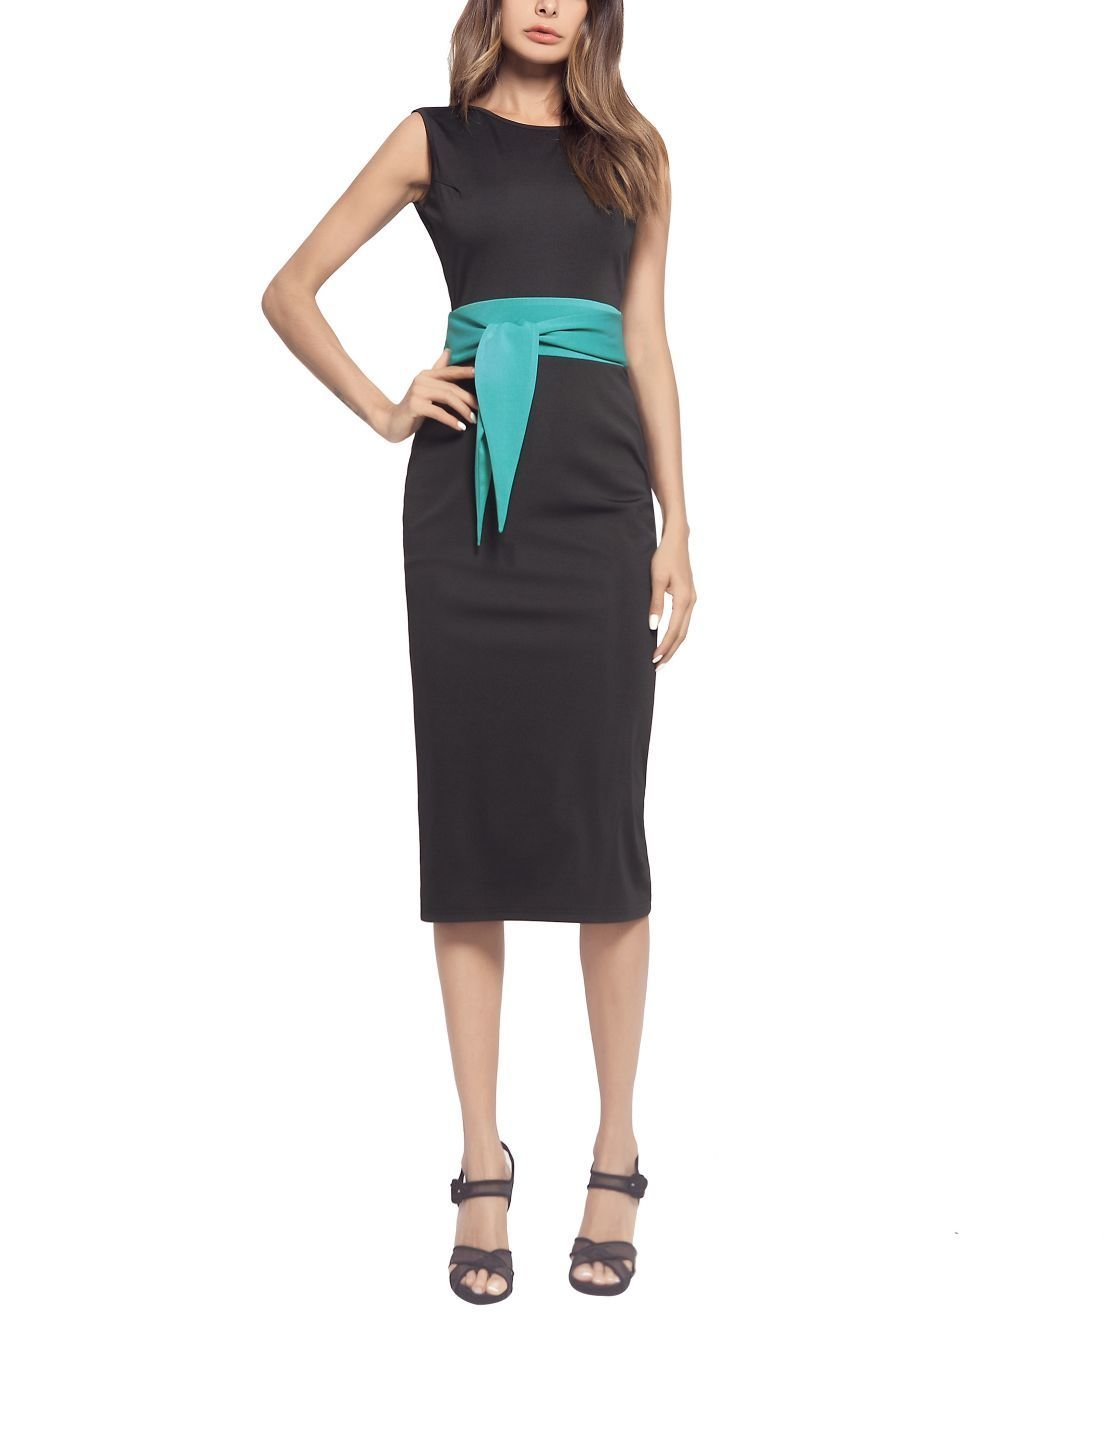 Sleeveless Column Dress for Work